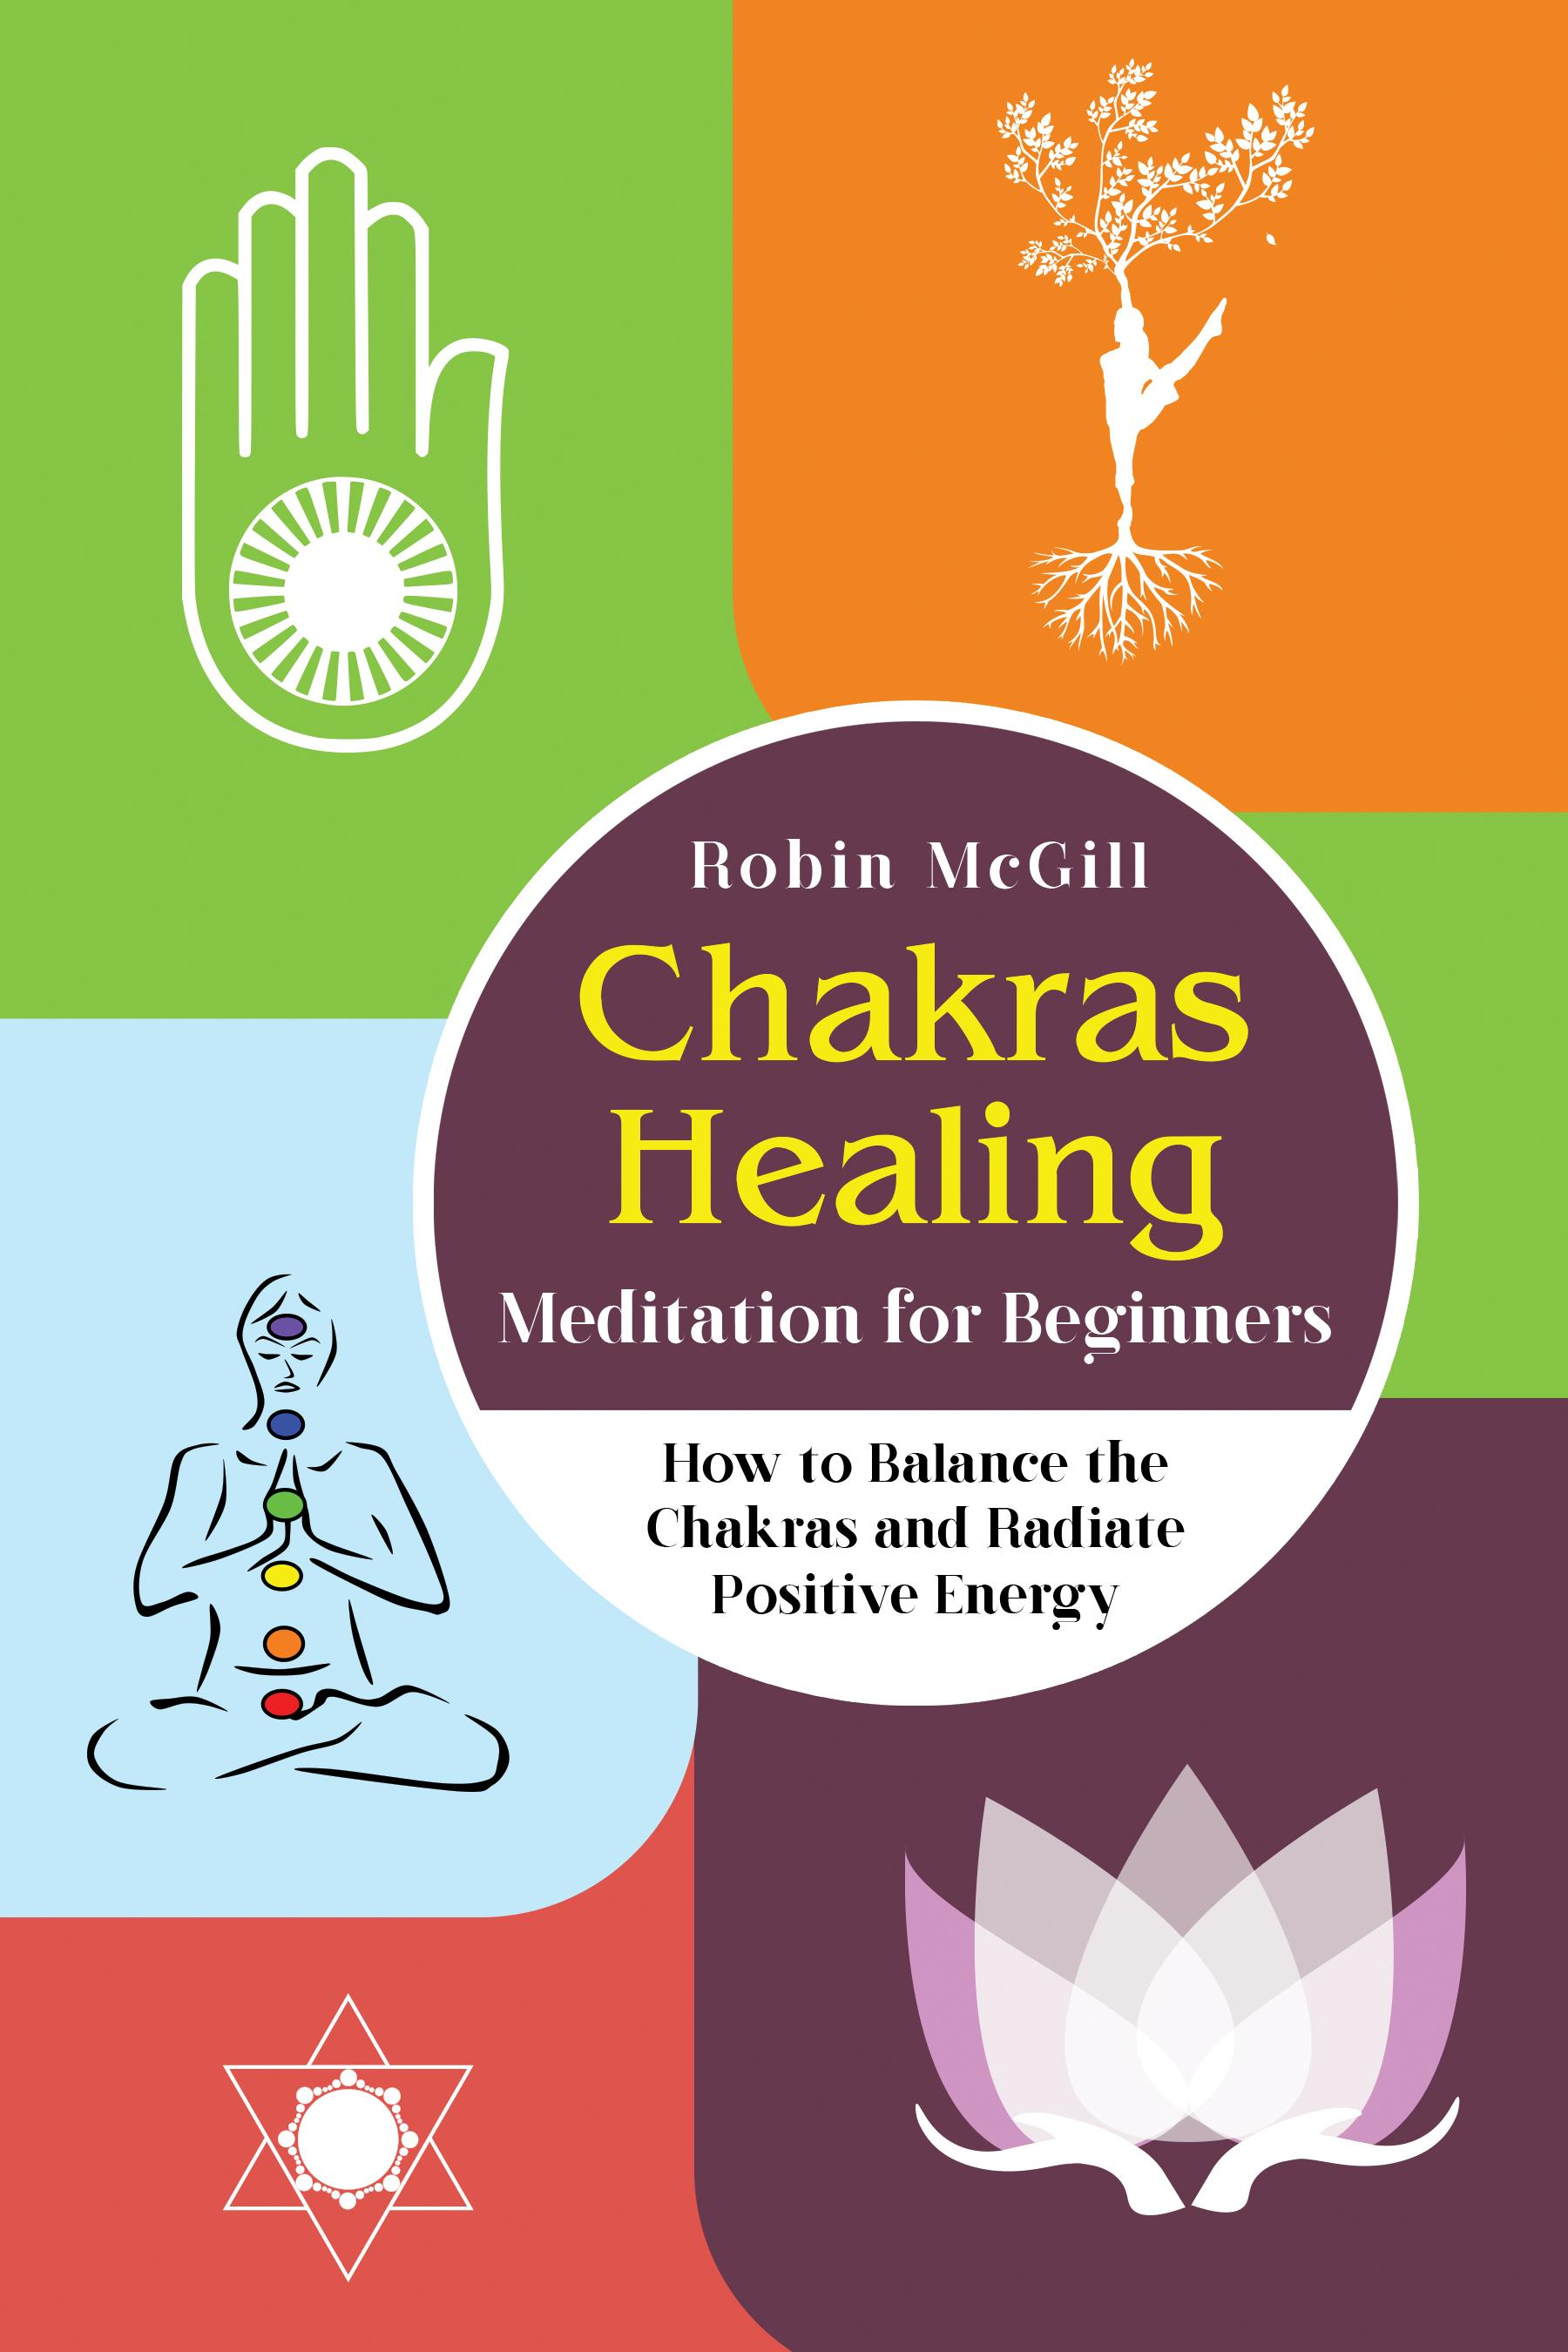 Chakras Healing Meditation for Beginners. How to Balance the Chakras and Radiate Positive Energy